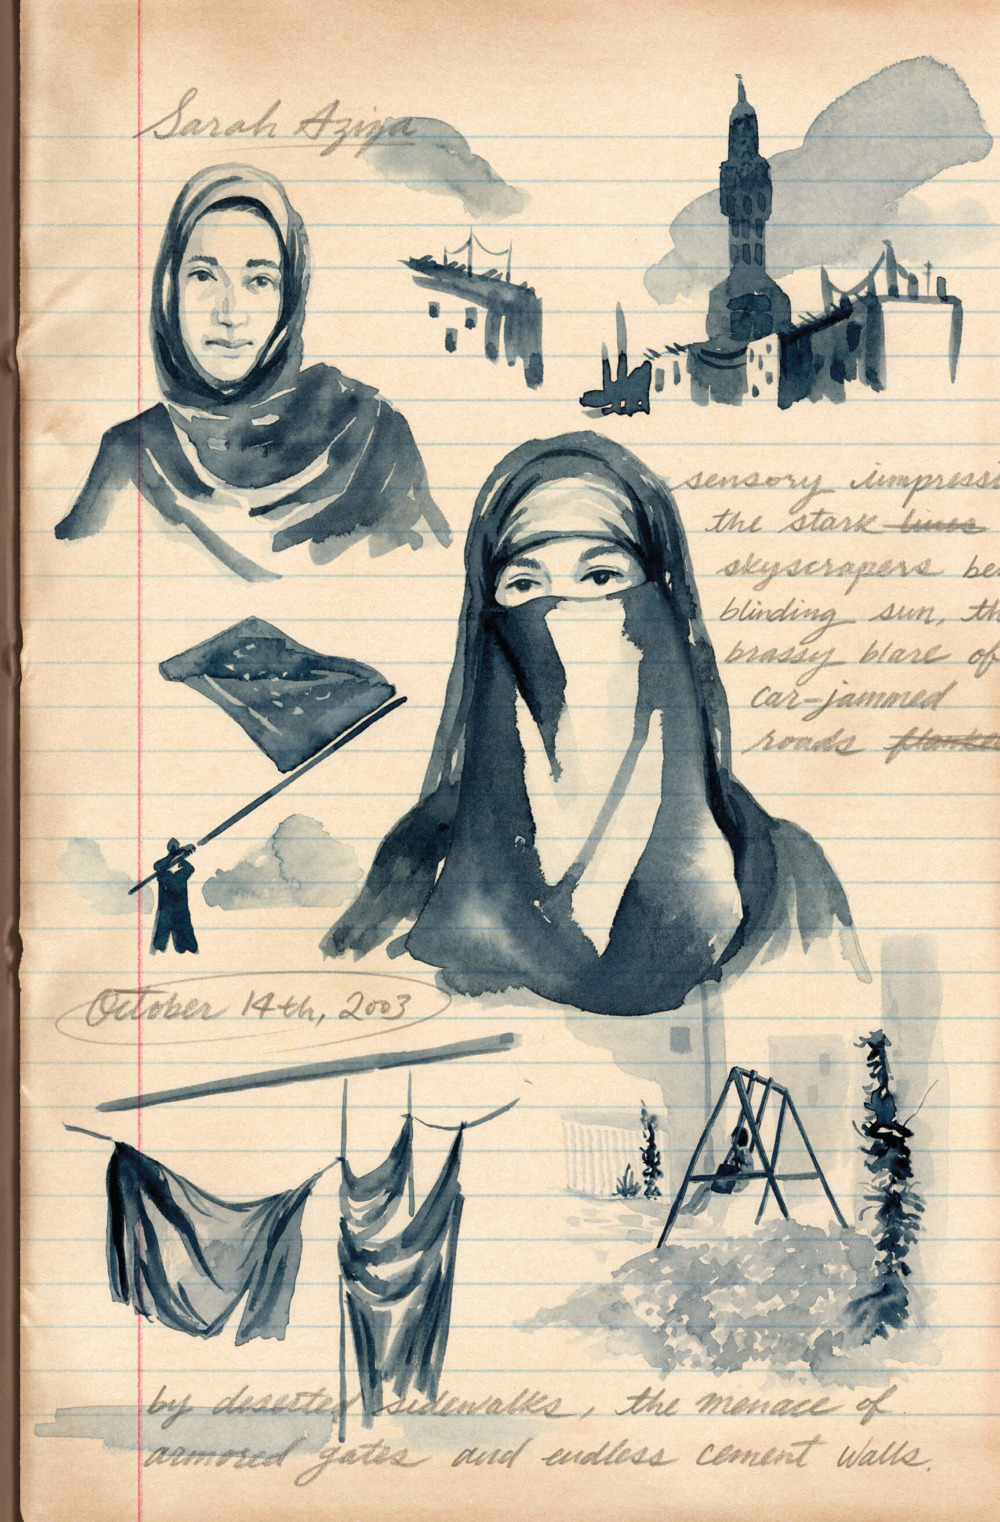 A notebook with various sketches of Saudi Arabic imagery next to handwritten notes.